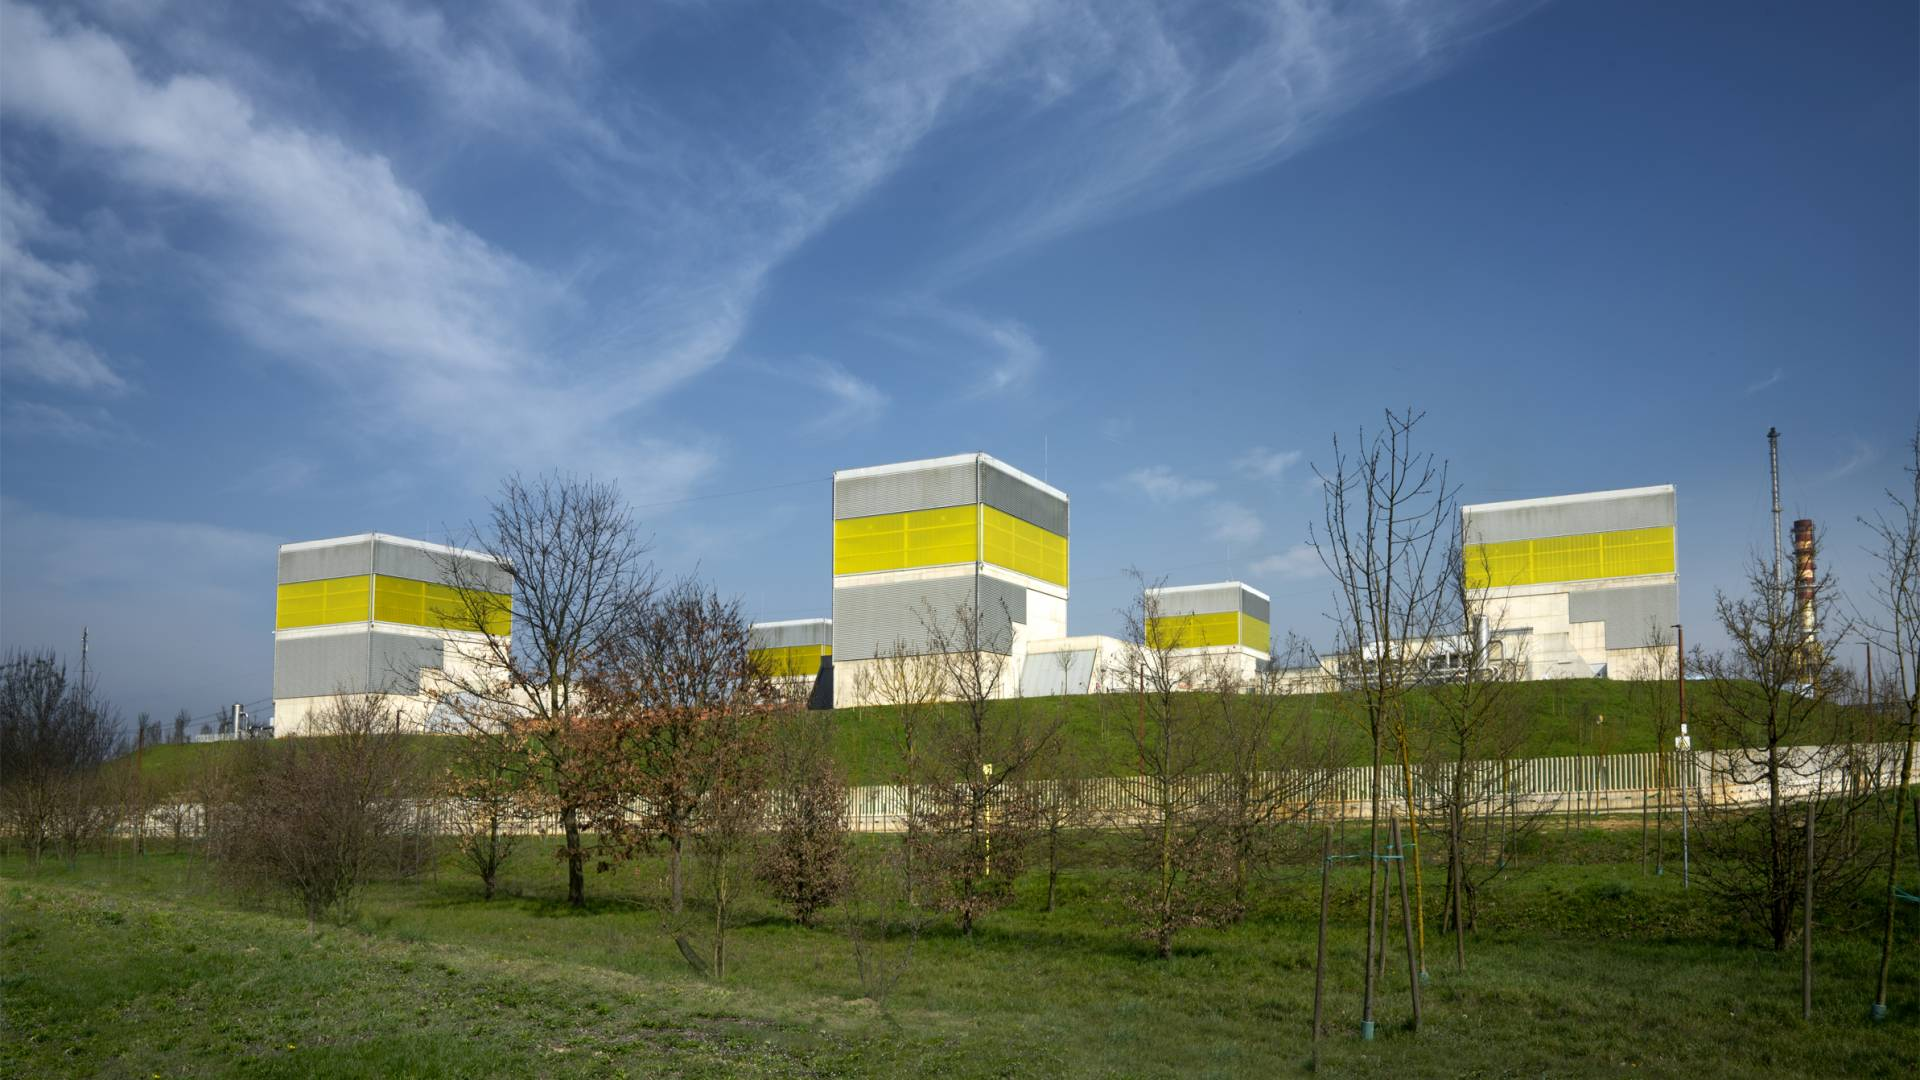 Green Data Center di Eni a Ferrara Erbognone